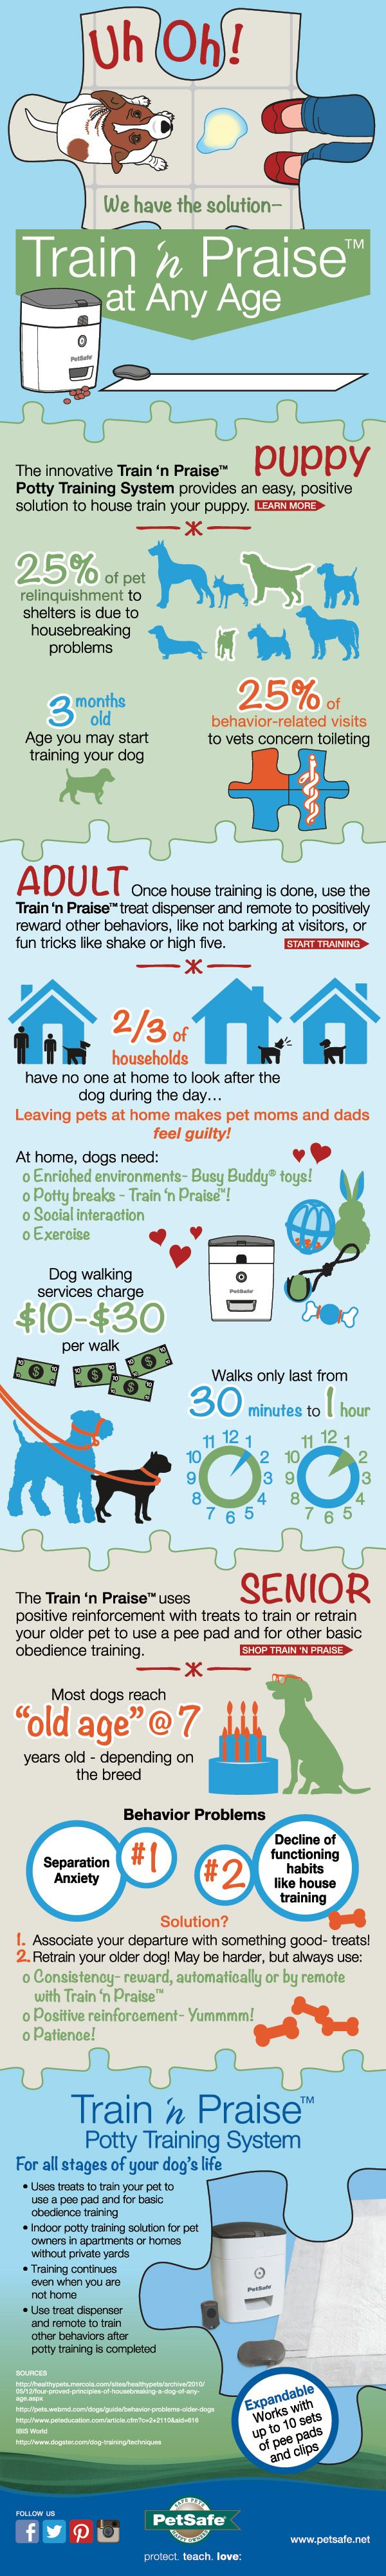 How To House Train A Pet At Any Age #infographic